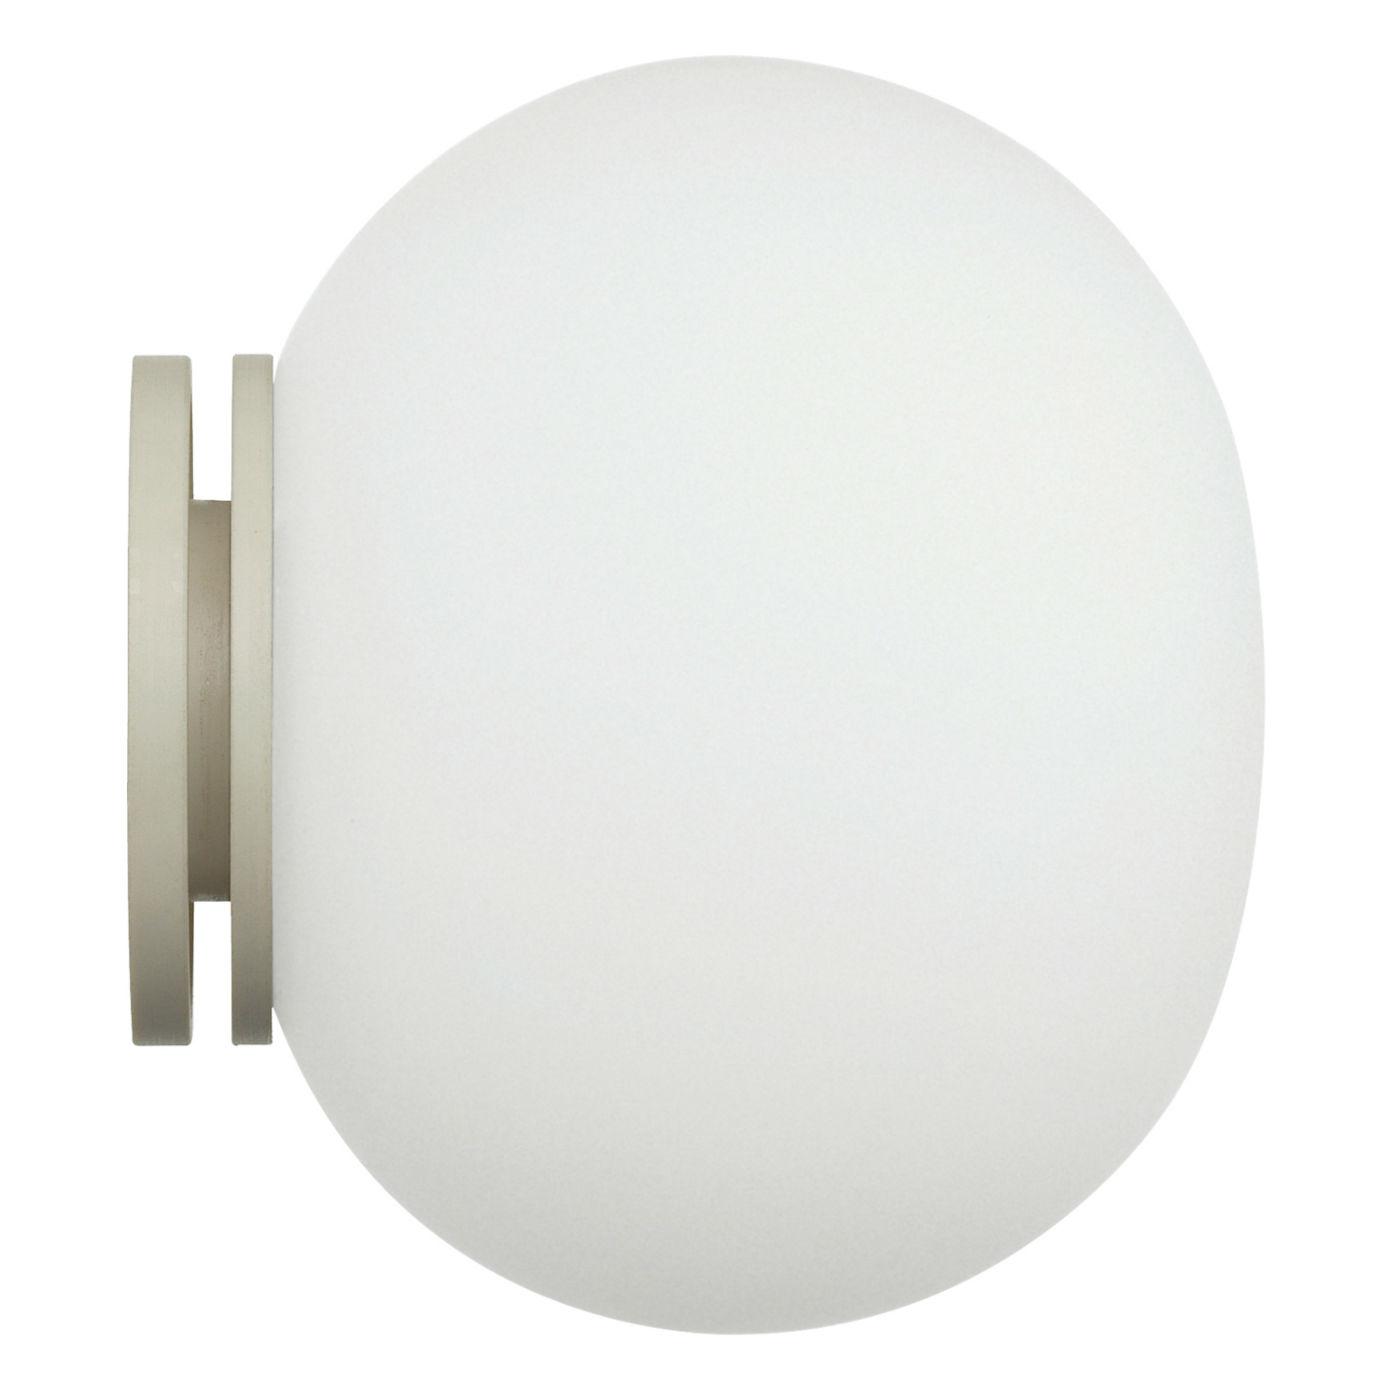 Glo Ball Mini C/W Applique/plafonnier 11,2cm G9 20W - blanc opale